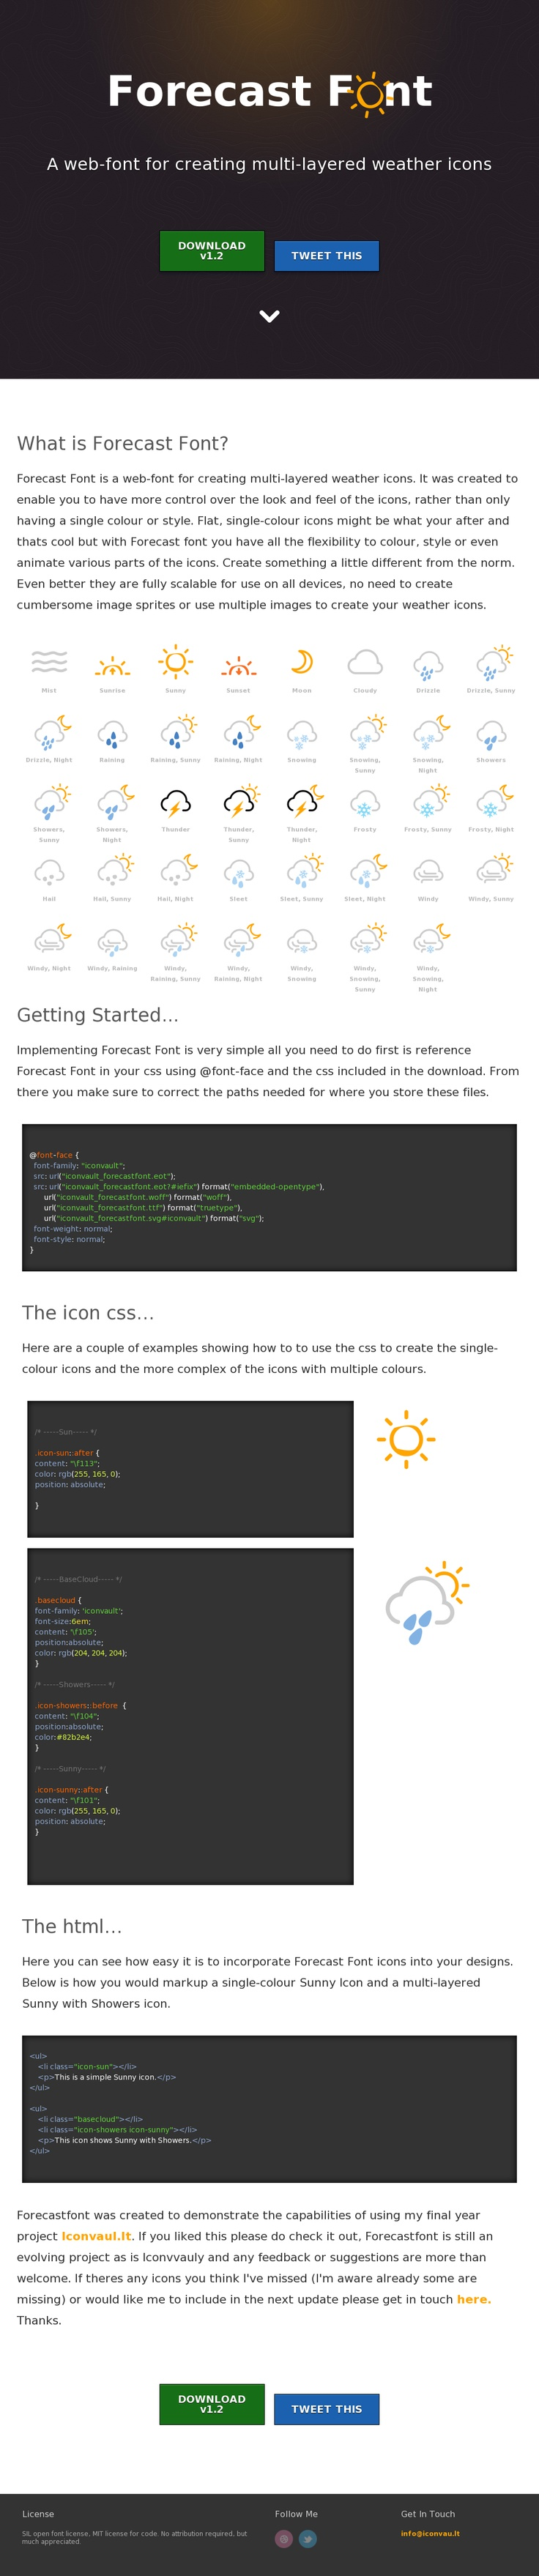 The 16 best Learn CSS and HTML images on Pinterest